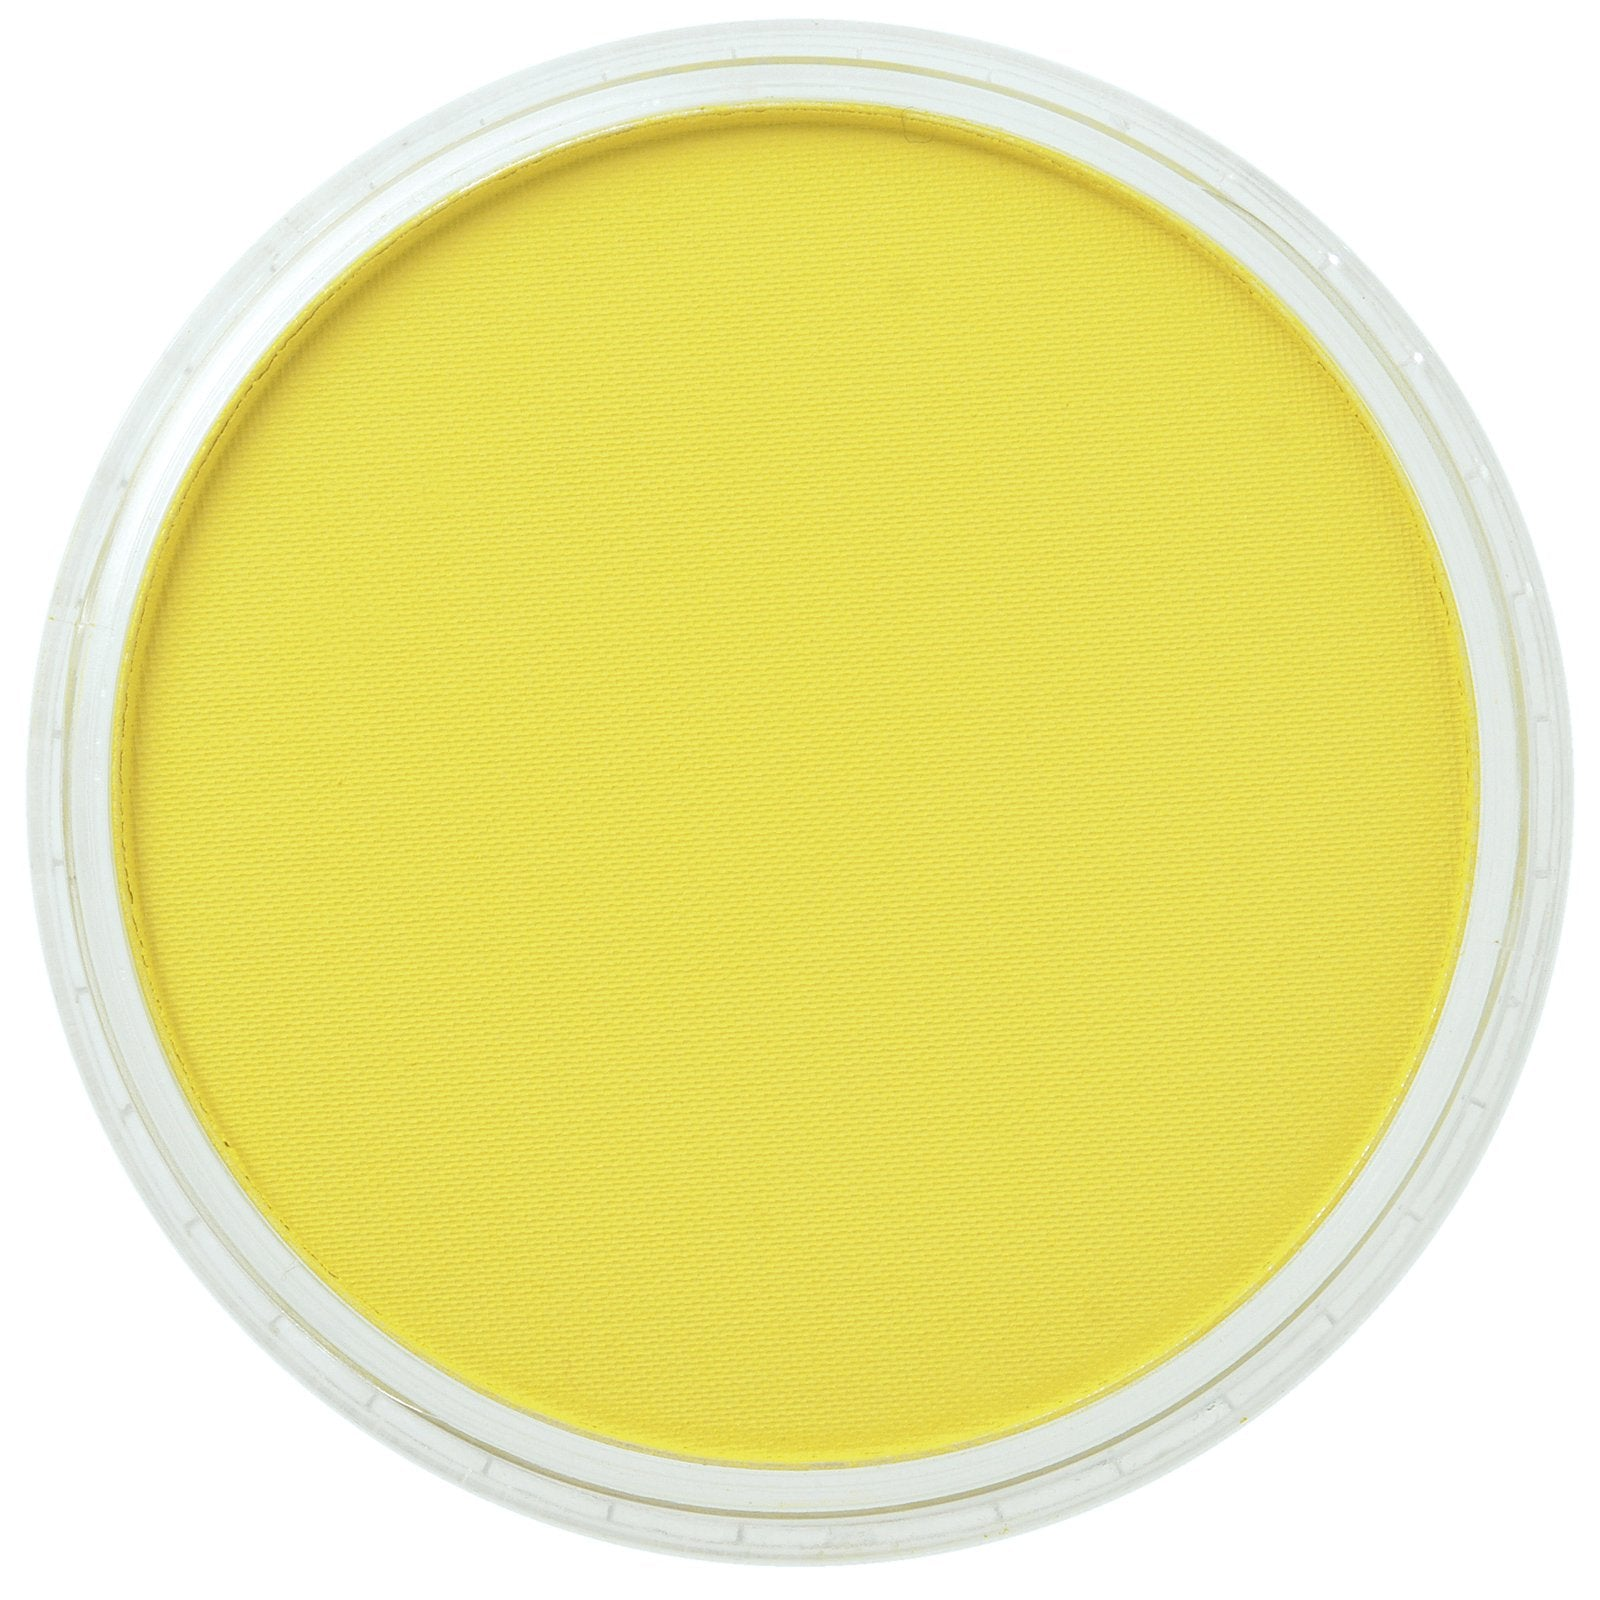 PanPastel - 220.5 HANSA YELLOW